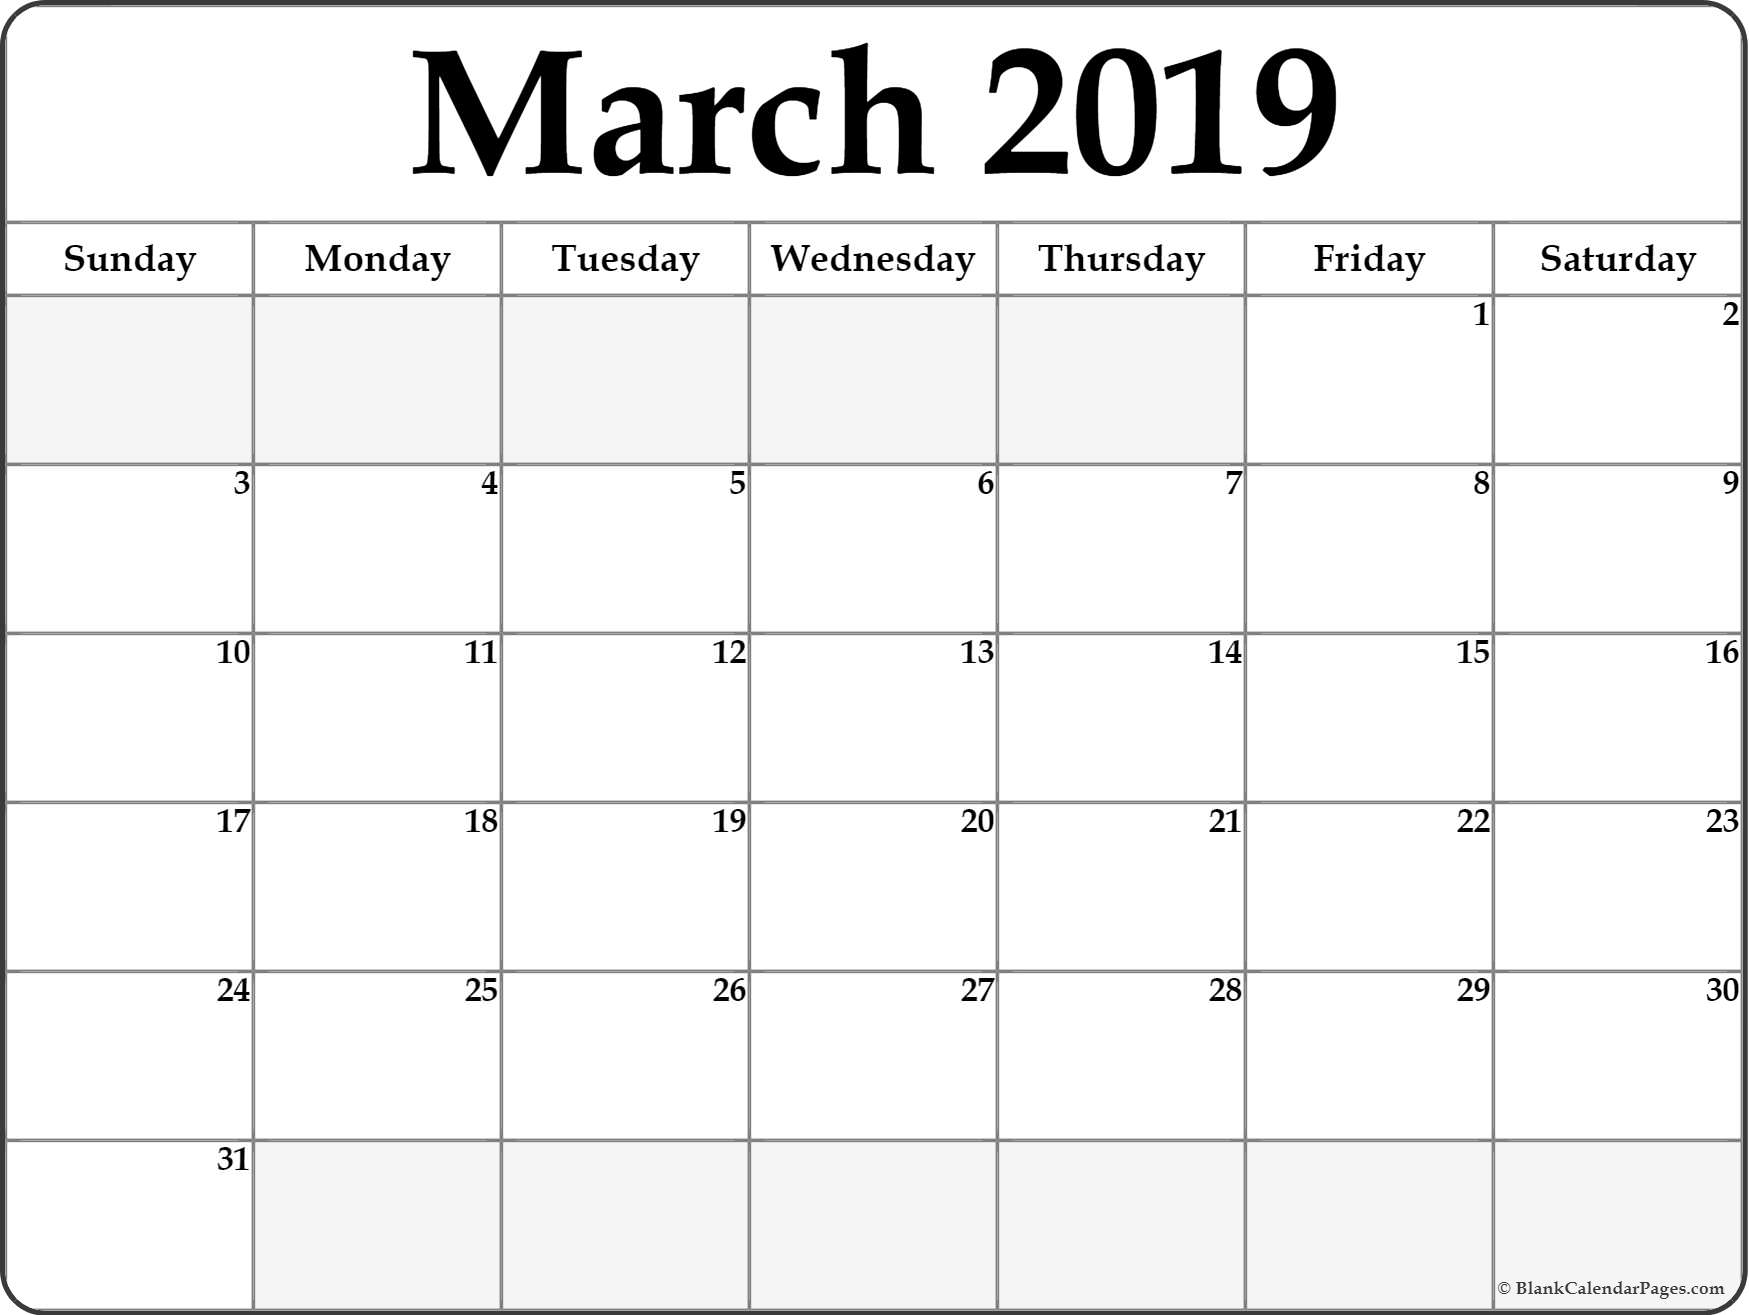 March 2019 Printable Calendar Page